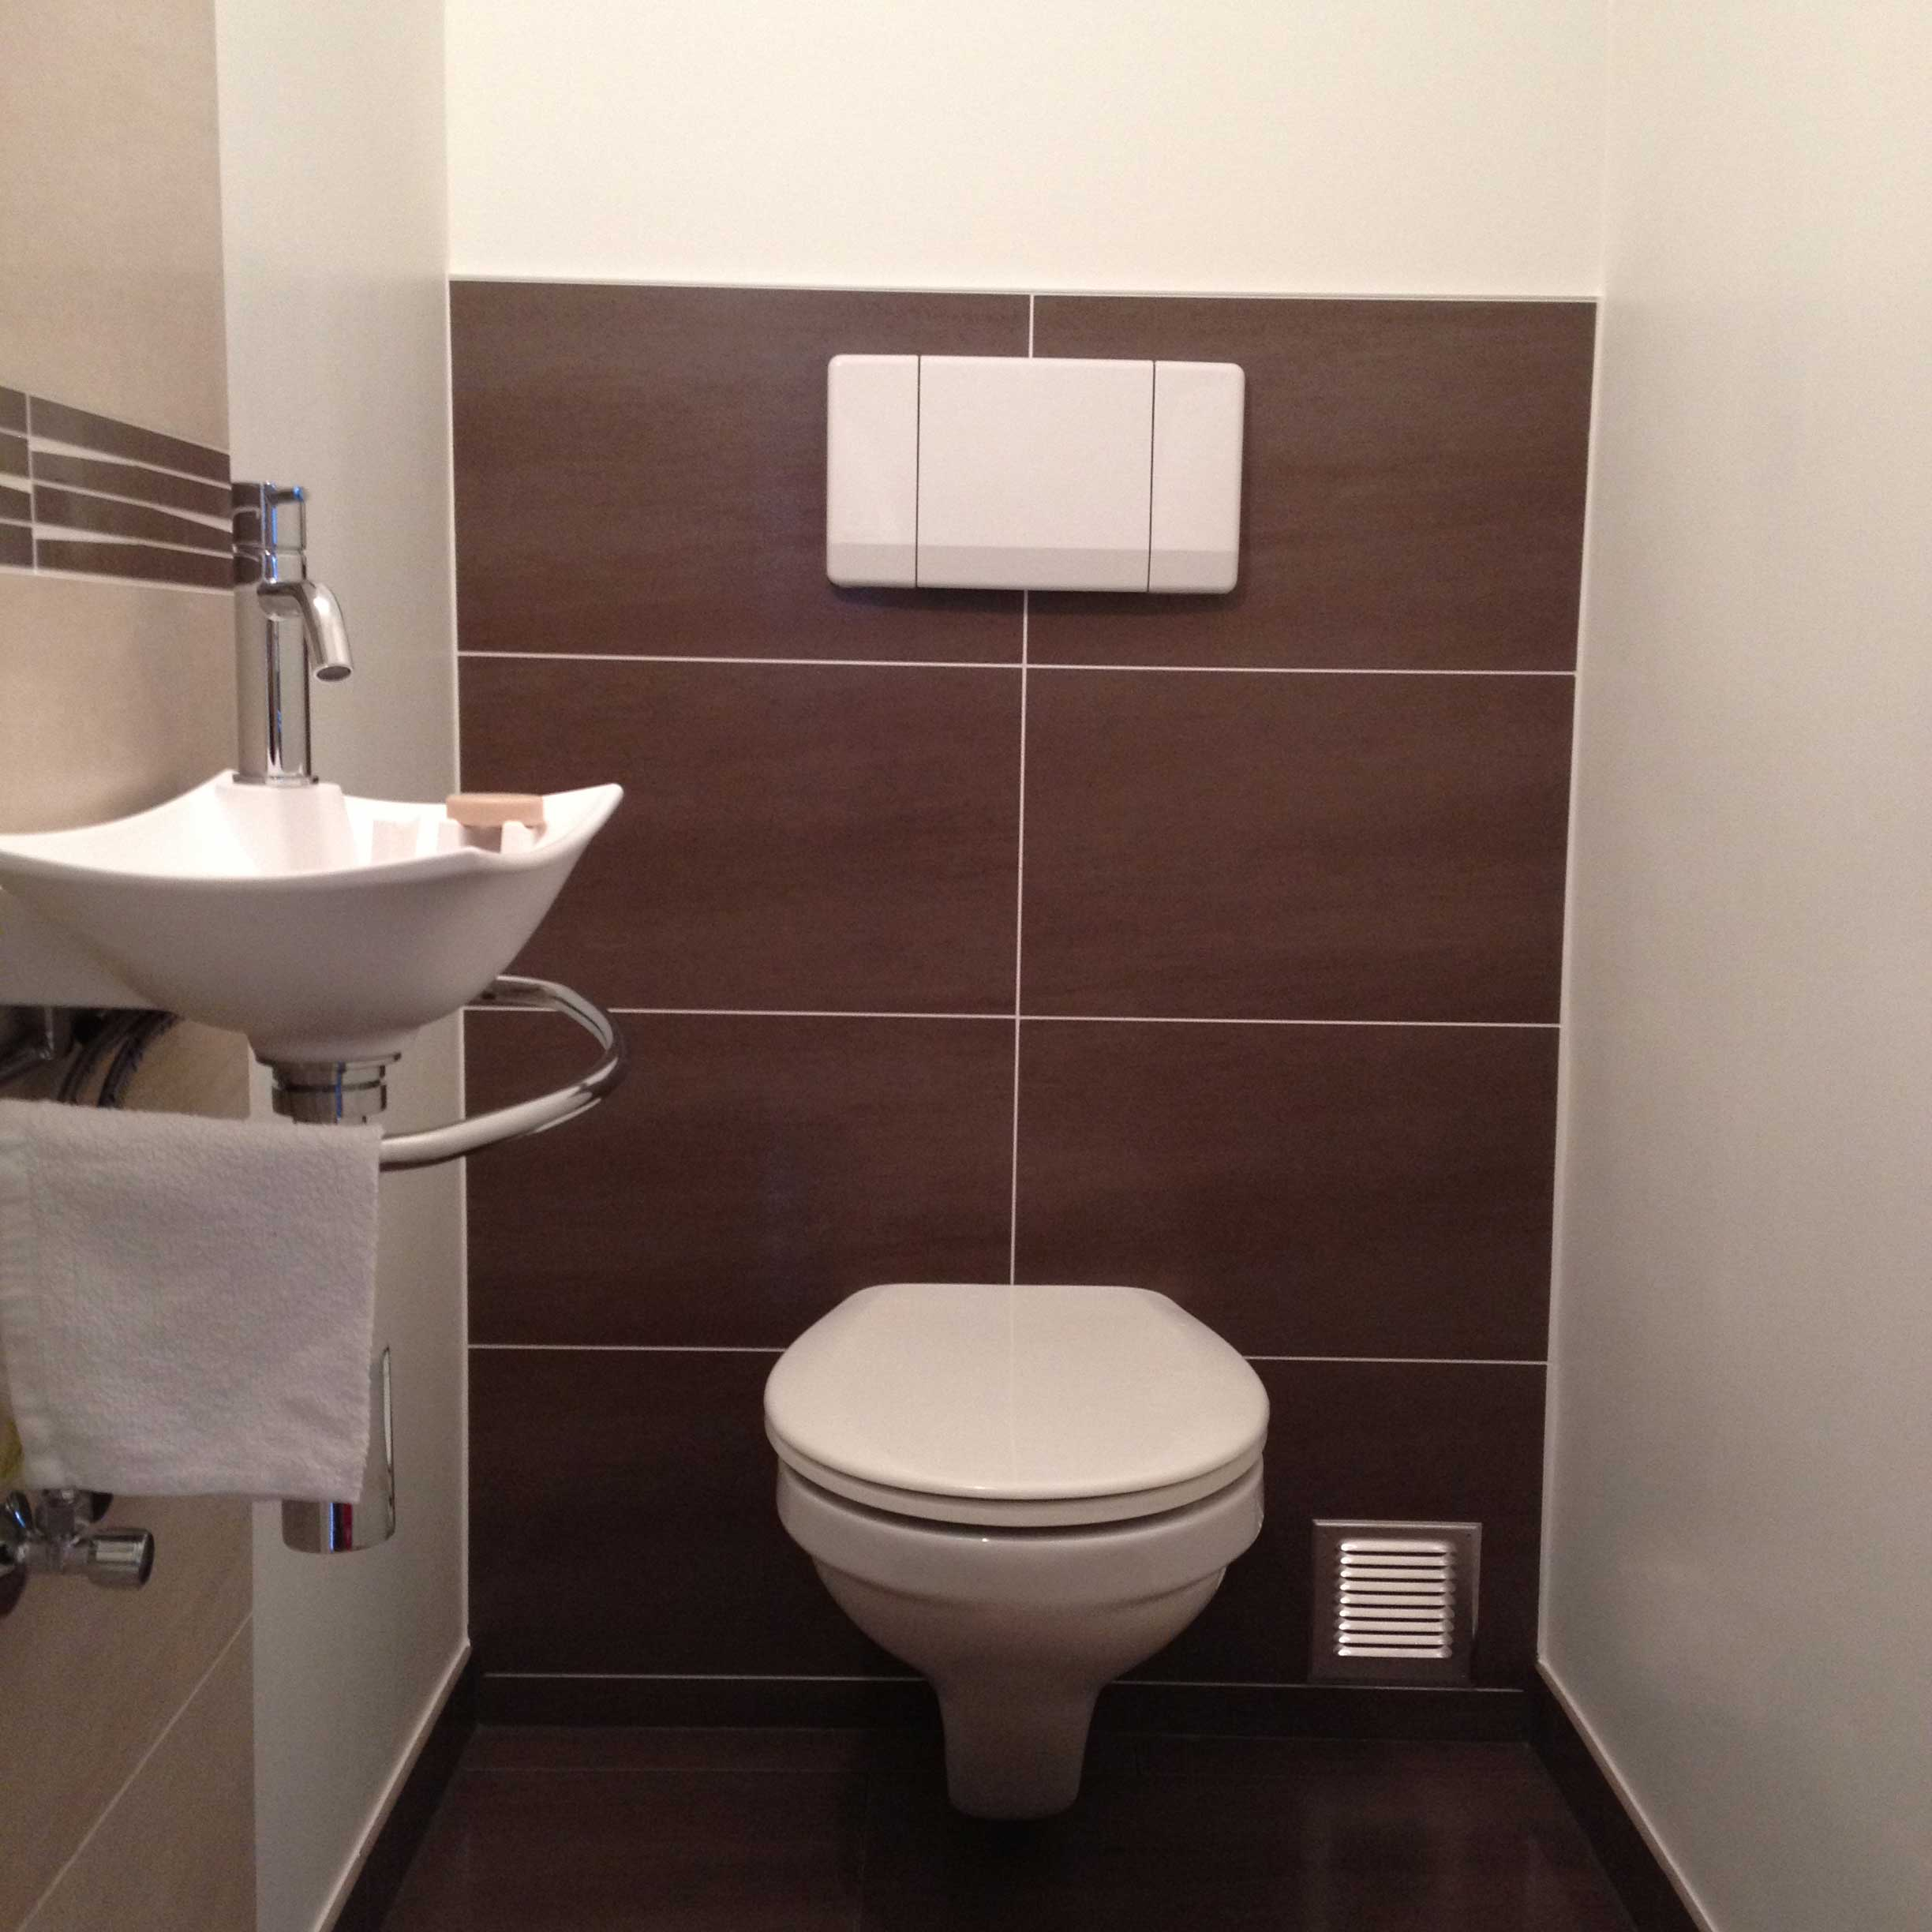 carrelage salle de bain beige marron » Photos de design d ...